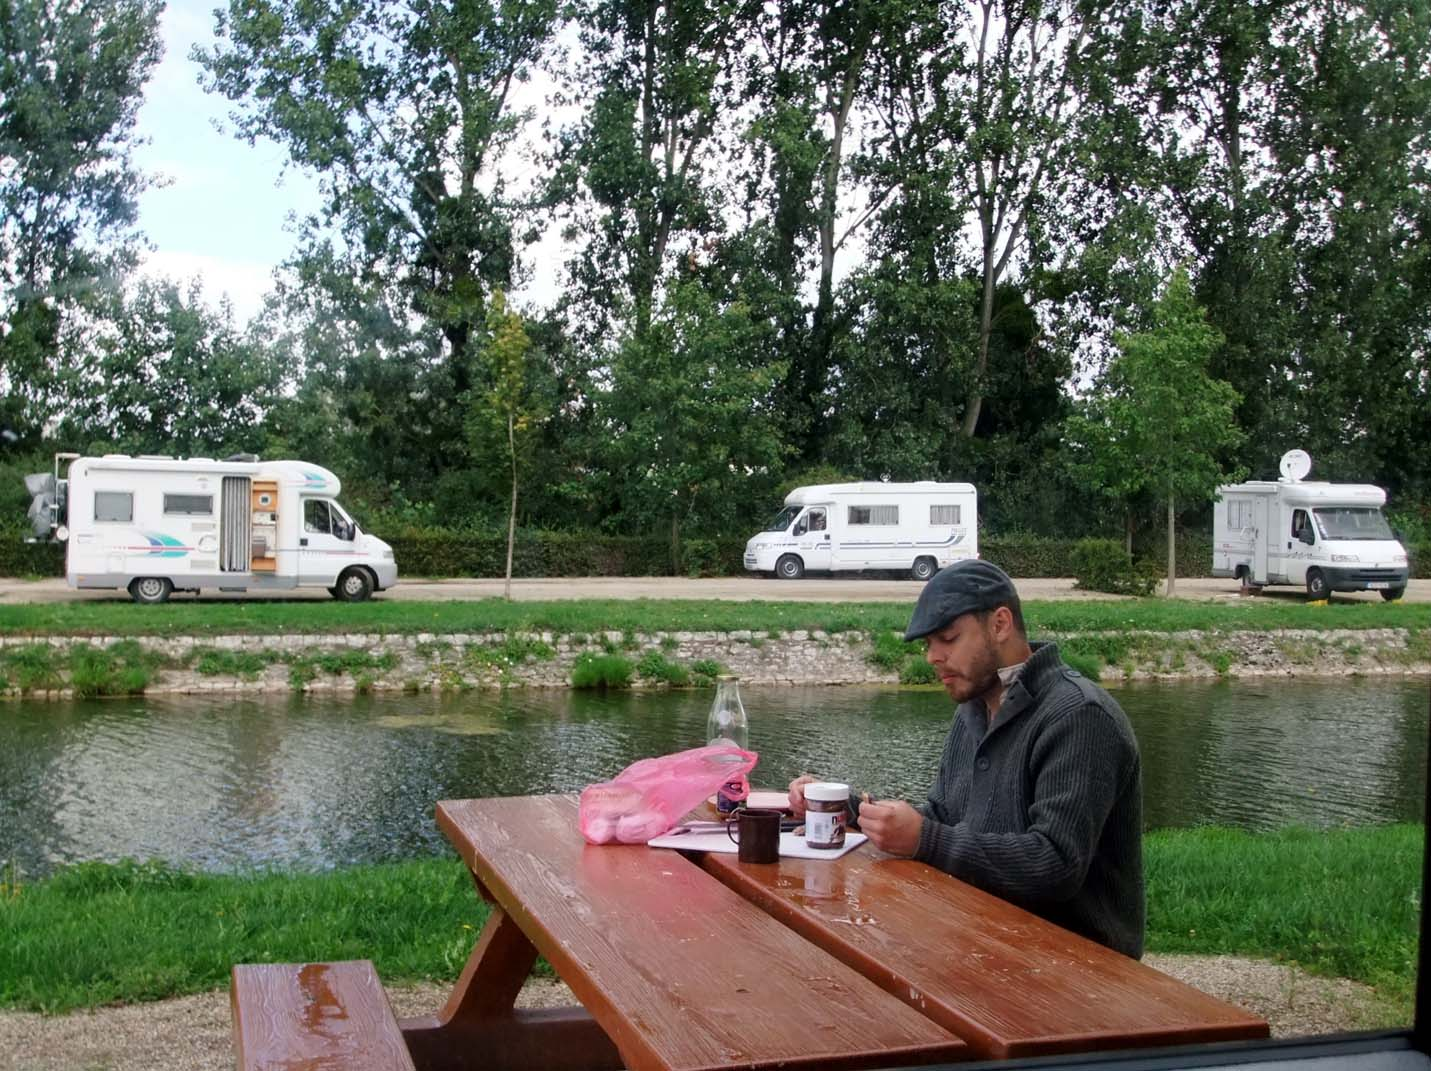 JR eating lunch with campervans behind at the aire de service, France